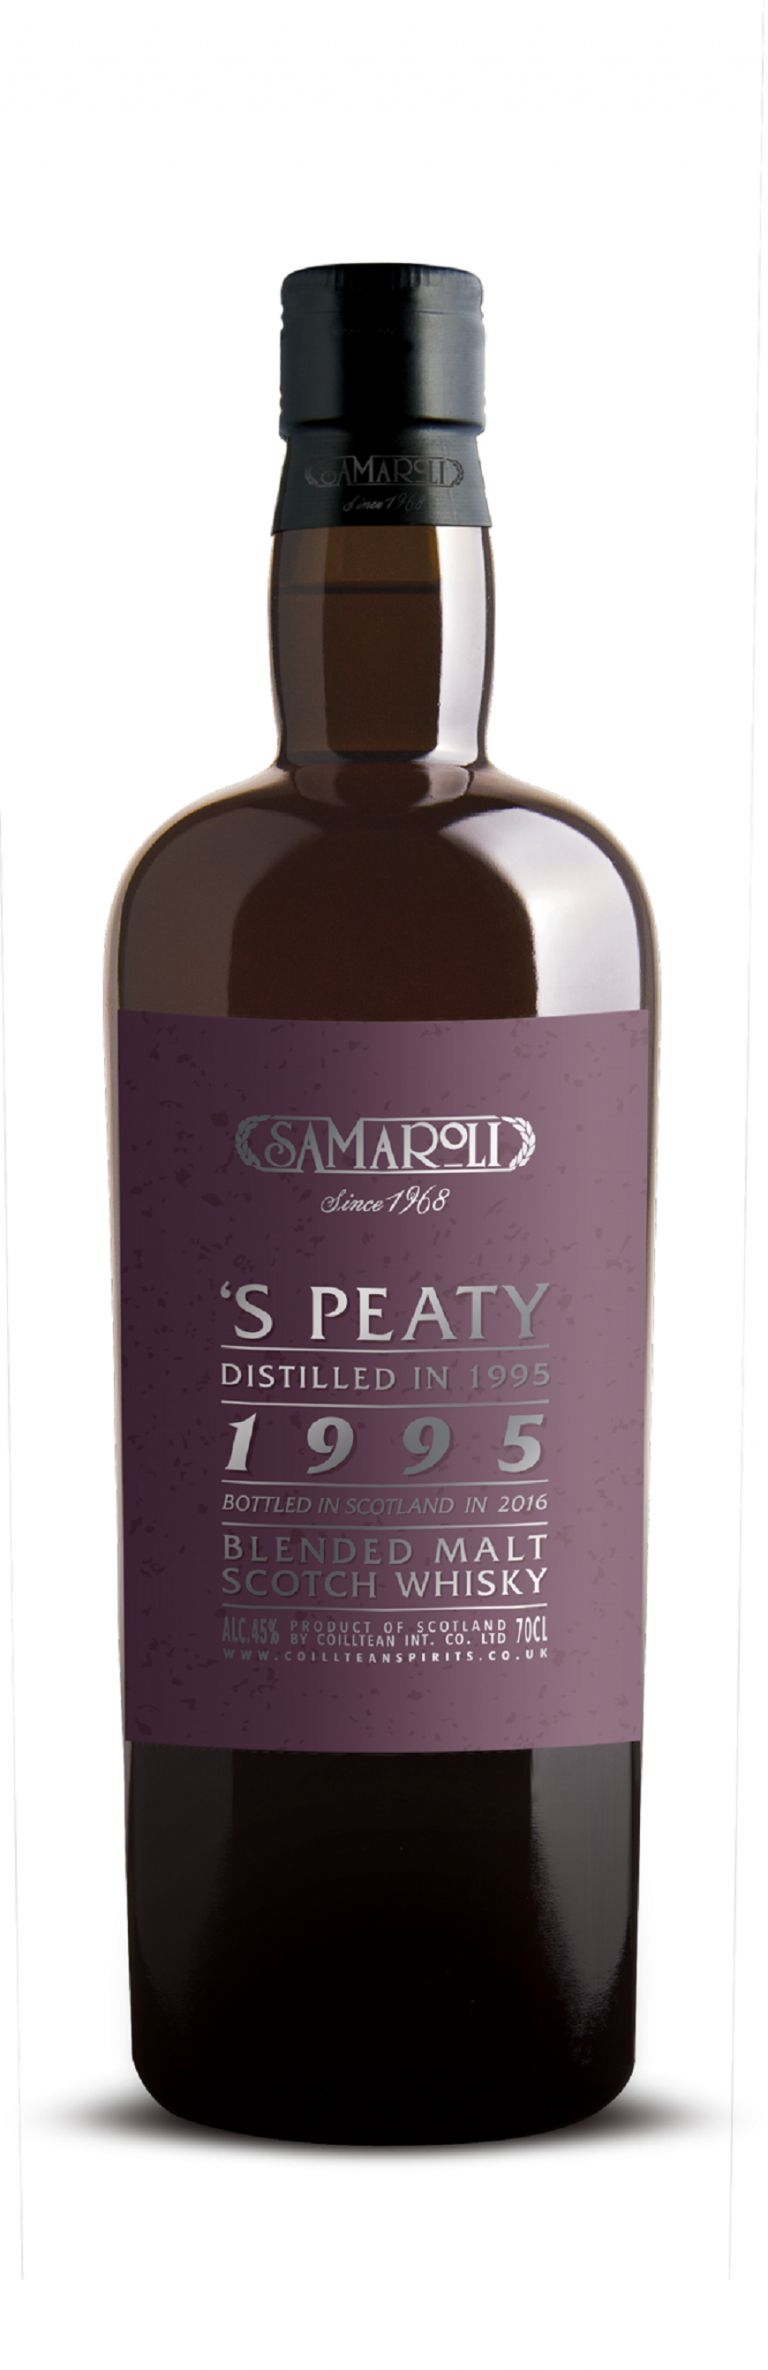 1995 'S Peaty - Blended Malt Scotch Whisky - ed. 2016 - 70 cl